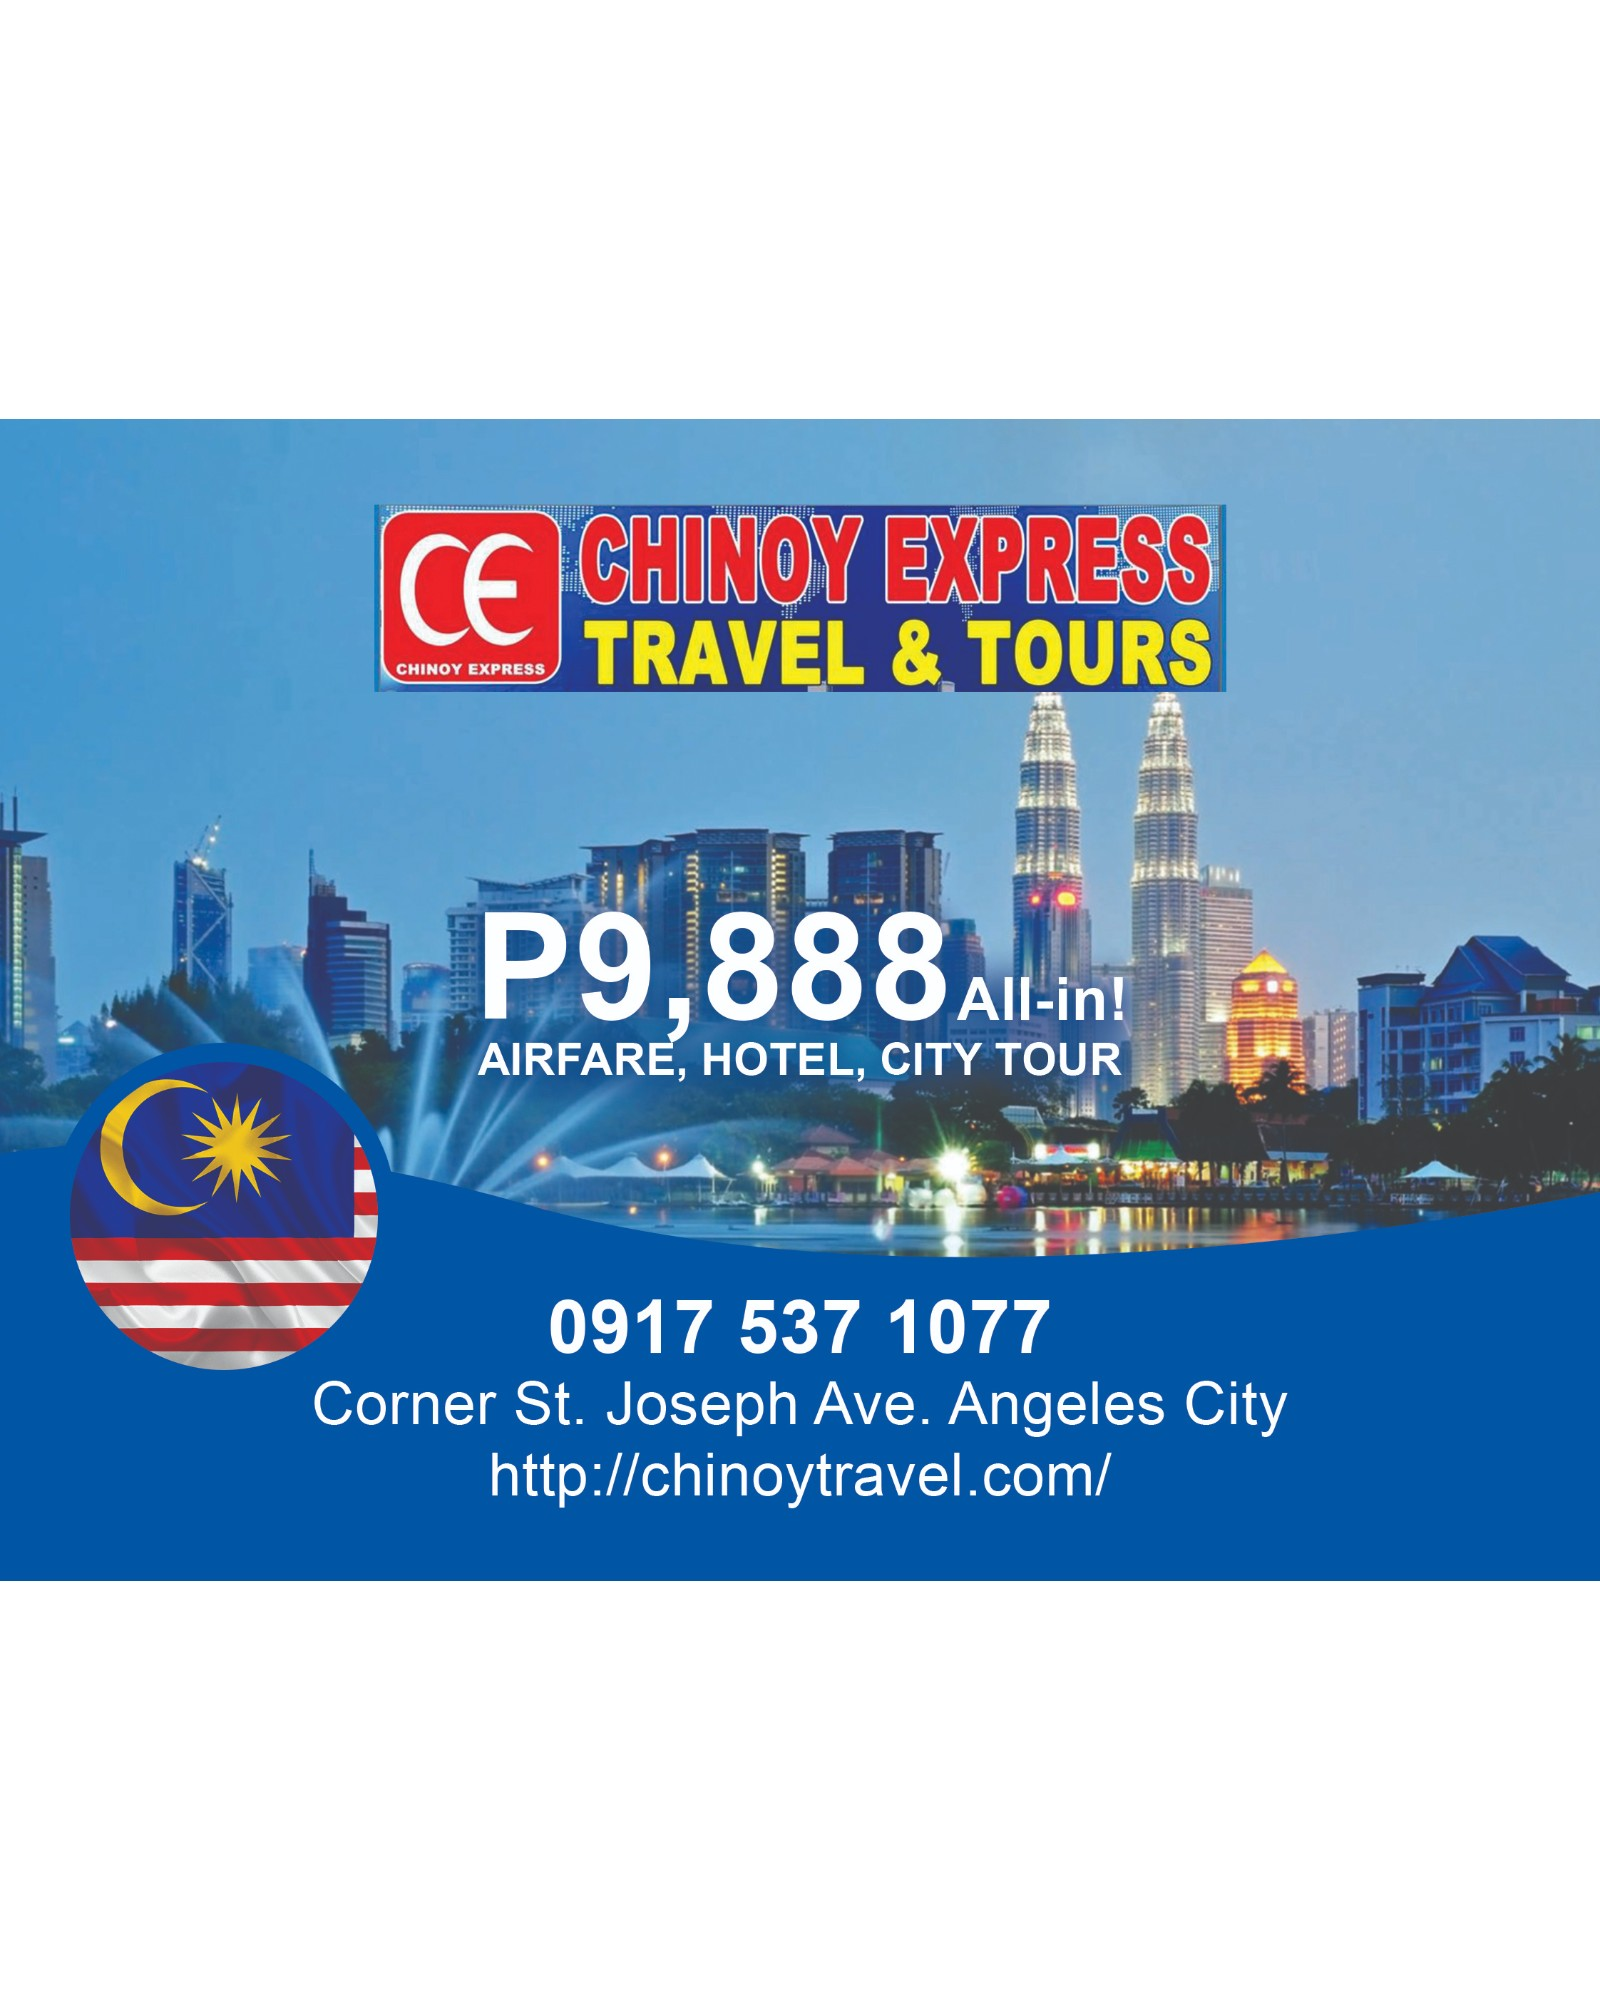 Chinoy Express Travel and Tours